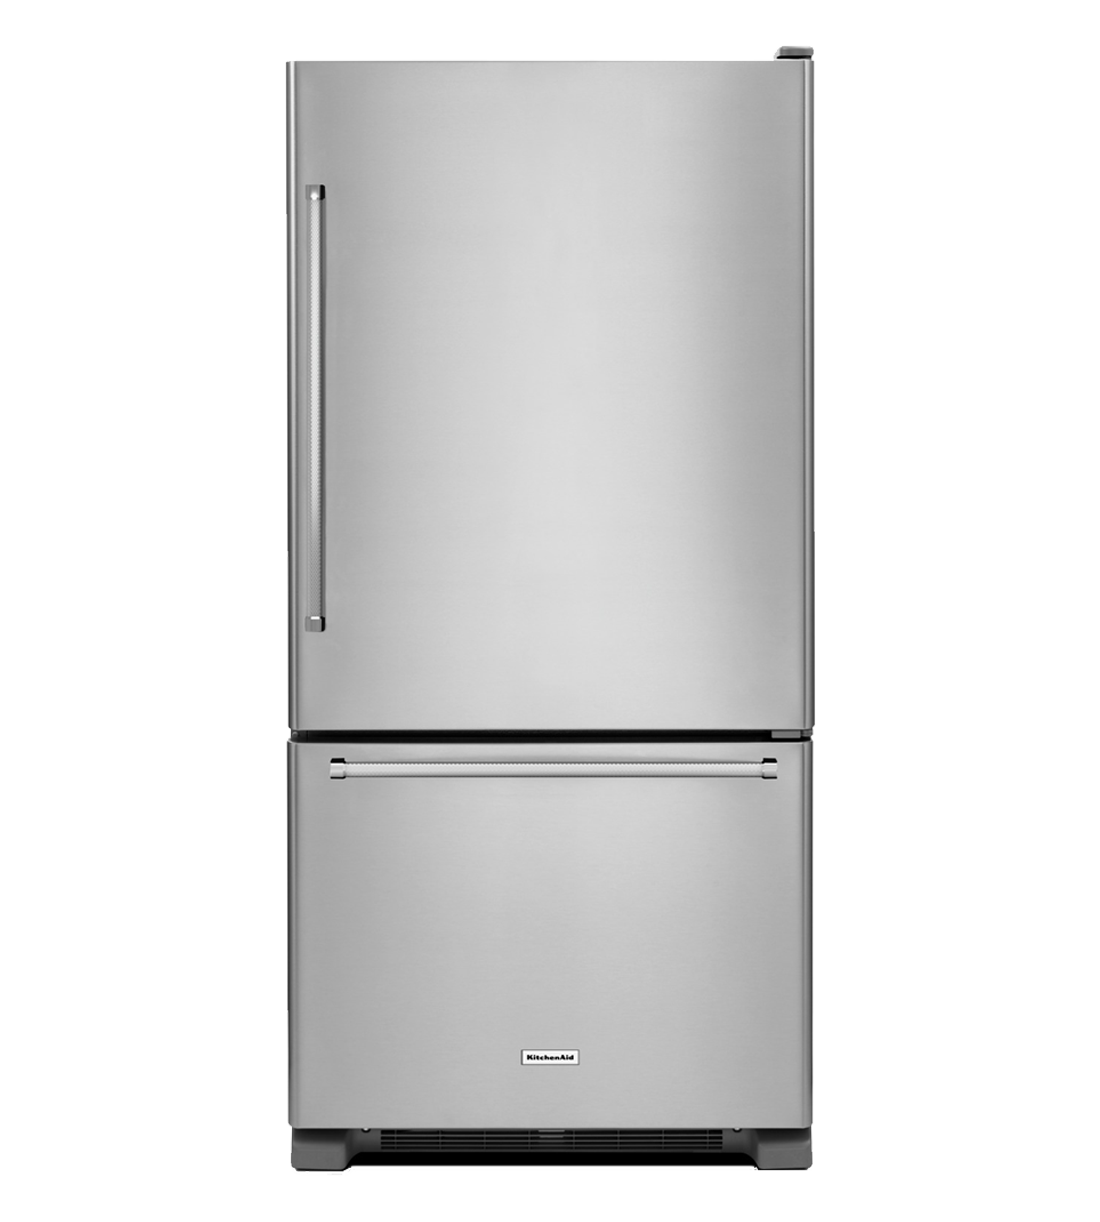 KitchenAid Refrigerator 33 StainlessSteel KRBR102ESS in Stainless Steel color showcased by Corbeil Electro Store